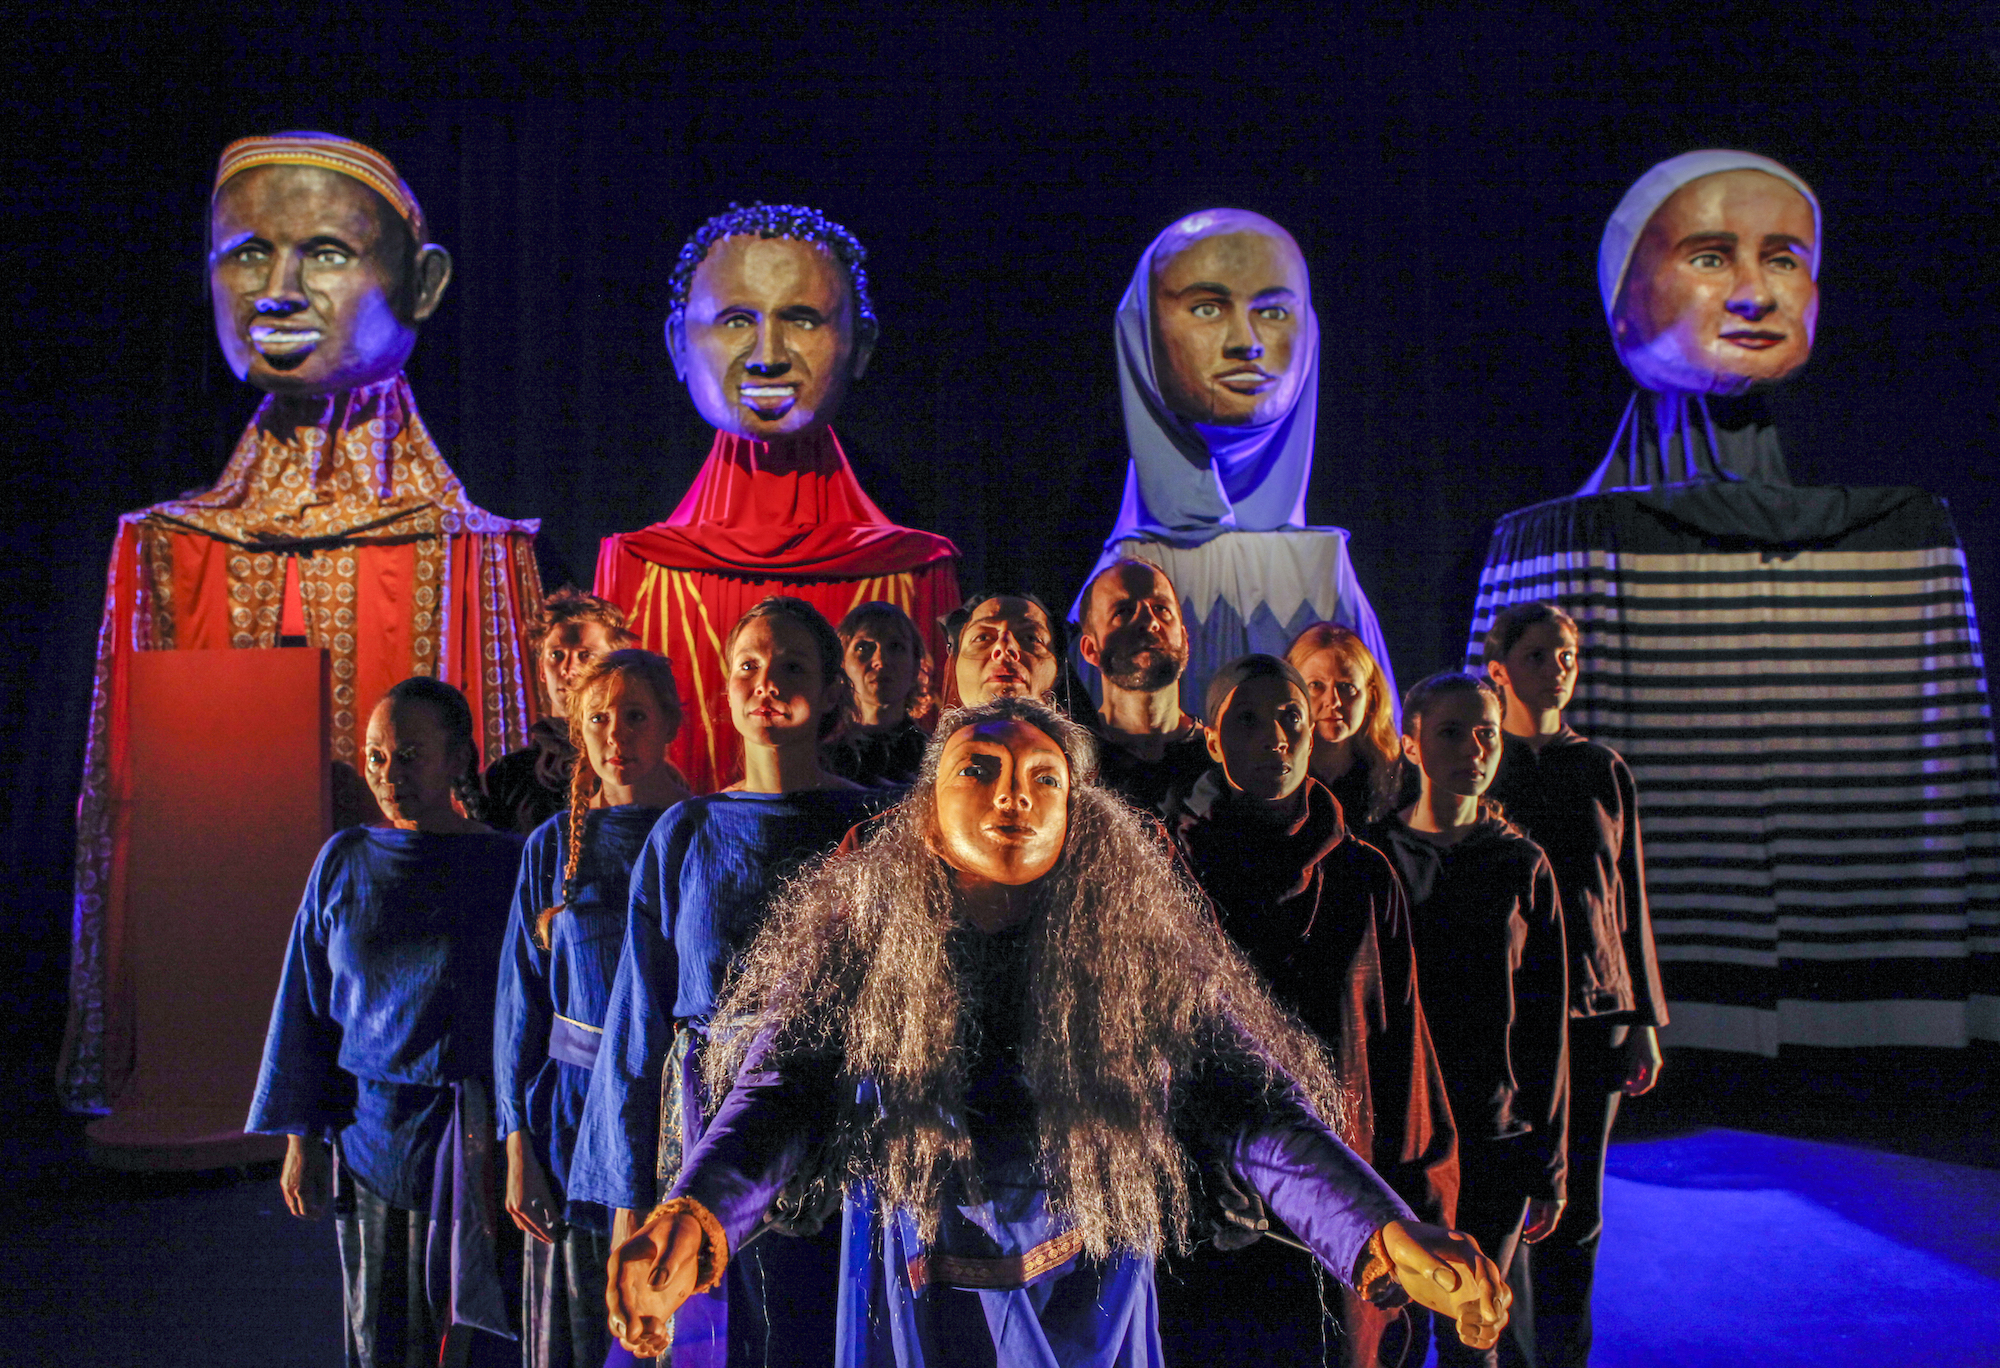 On stage, one puppet front and center has its arms outstretched. Behind it, 11 performers are gathered together and looking upwards. In the background are four large busts on top of pedestals.